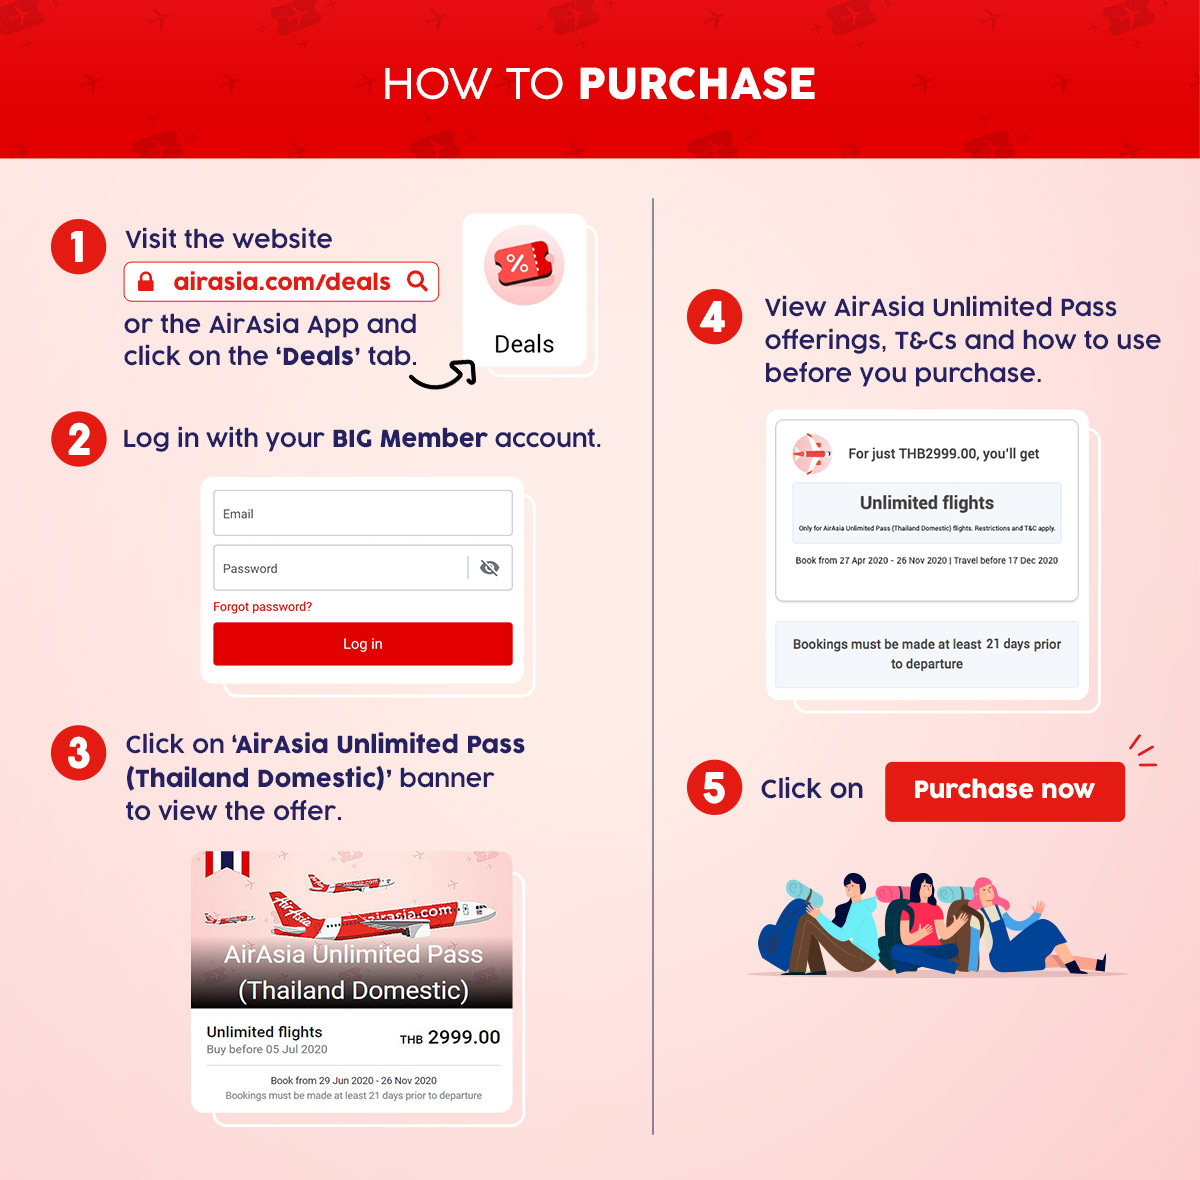 How to purchase the AirAsia Unlimited Pass (Thailand Domestic)